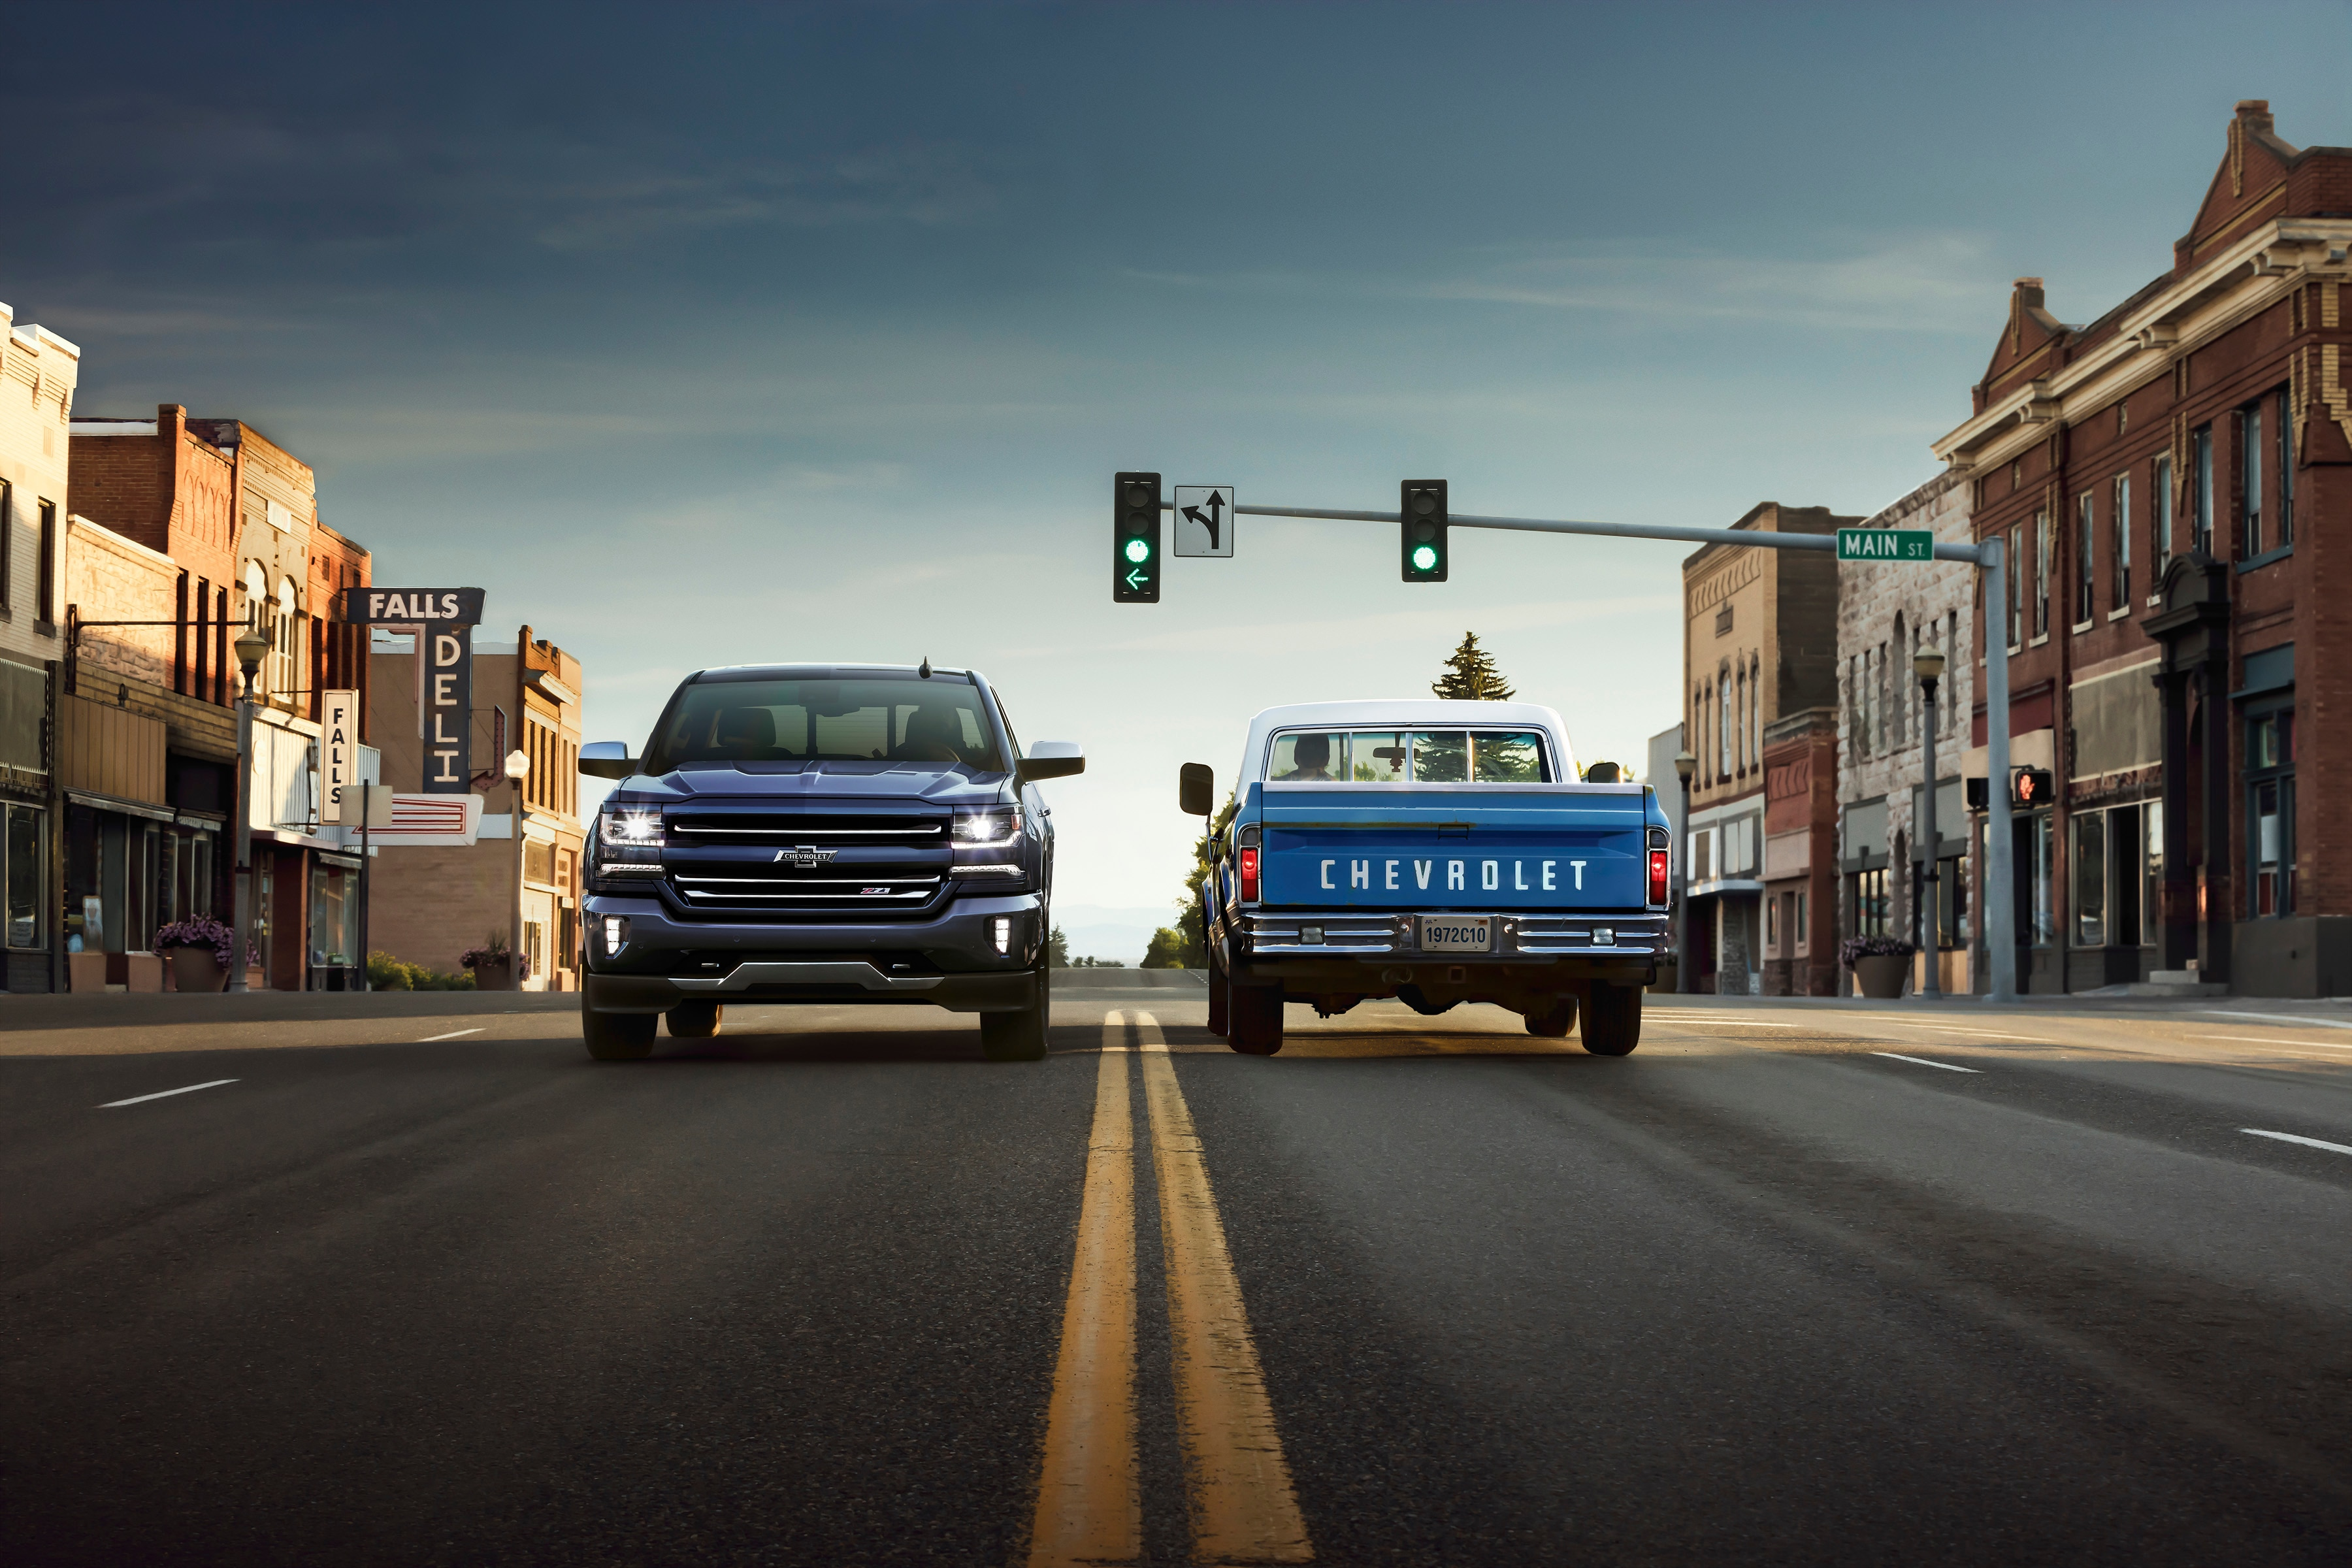 Country Music Station Celebrates 100 Years of Chevy Trucks